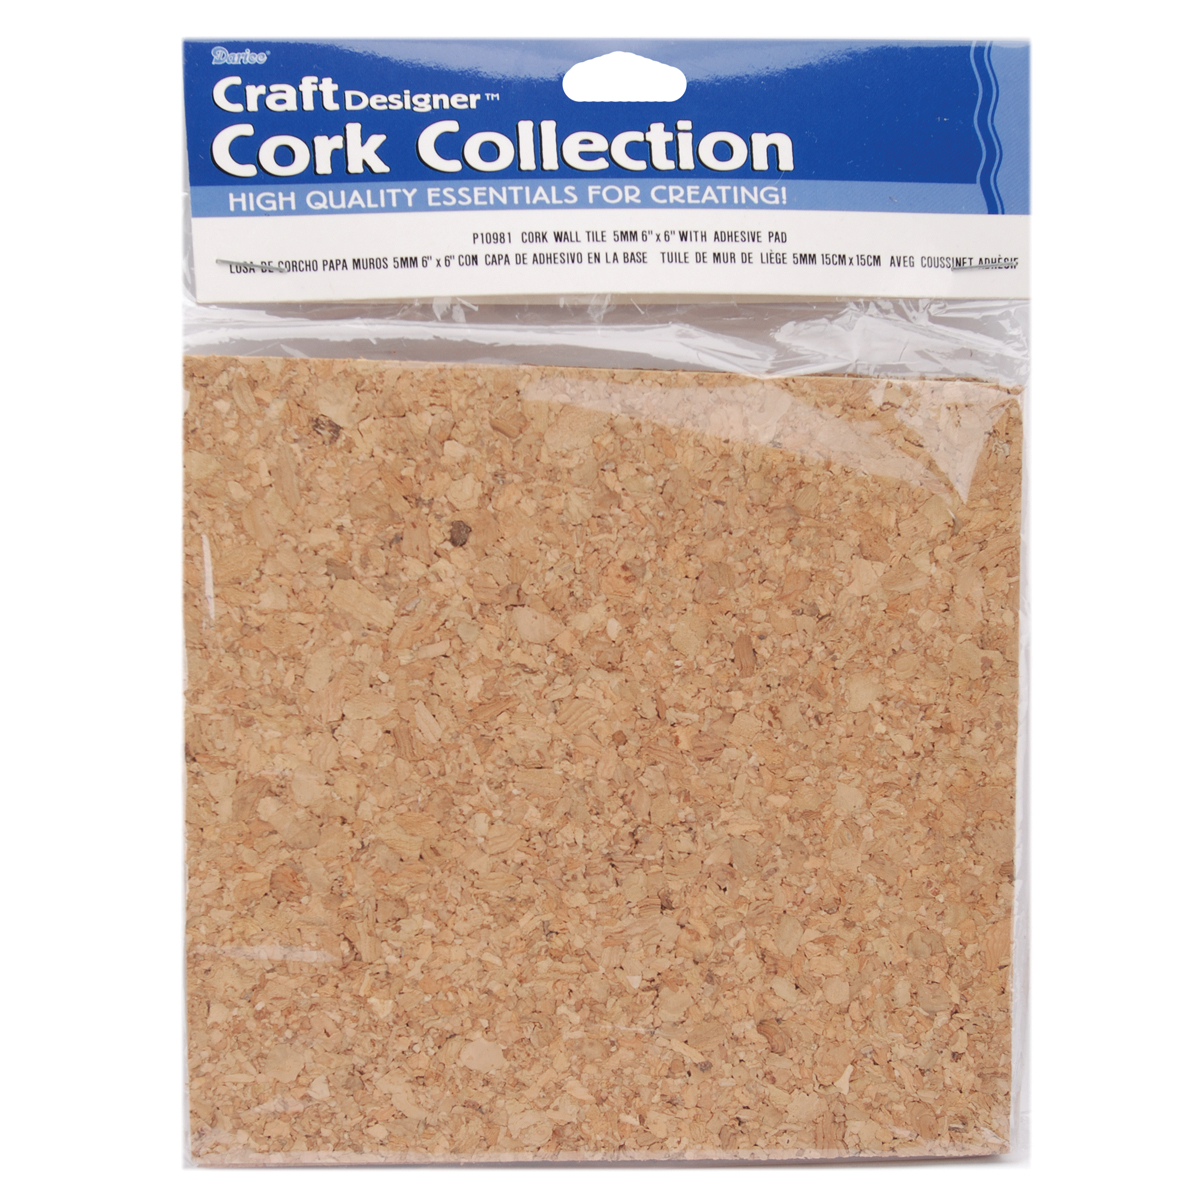 Cork Tile Squares: 6 x 6 inches, 4 Pack